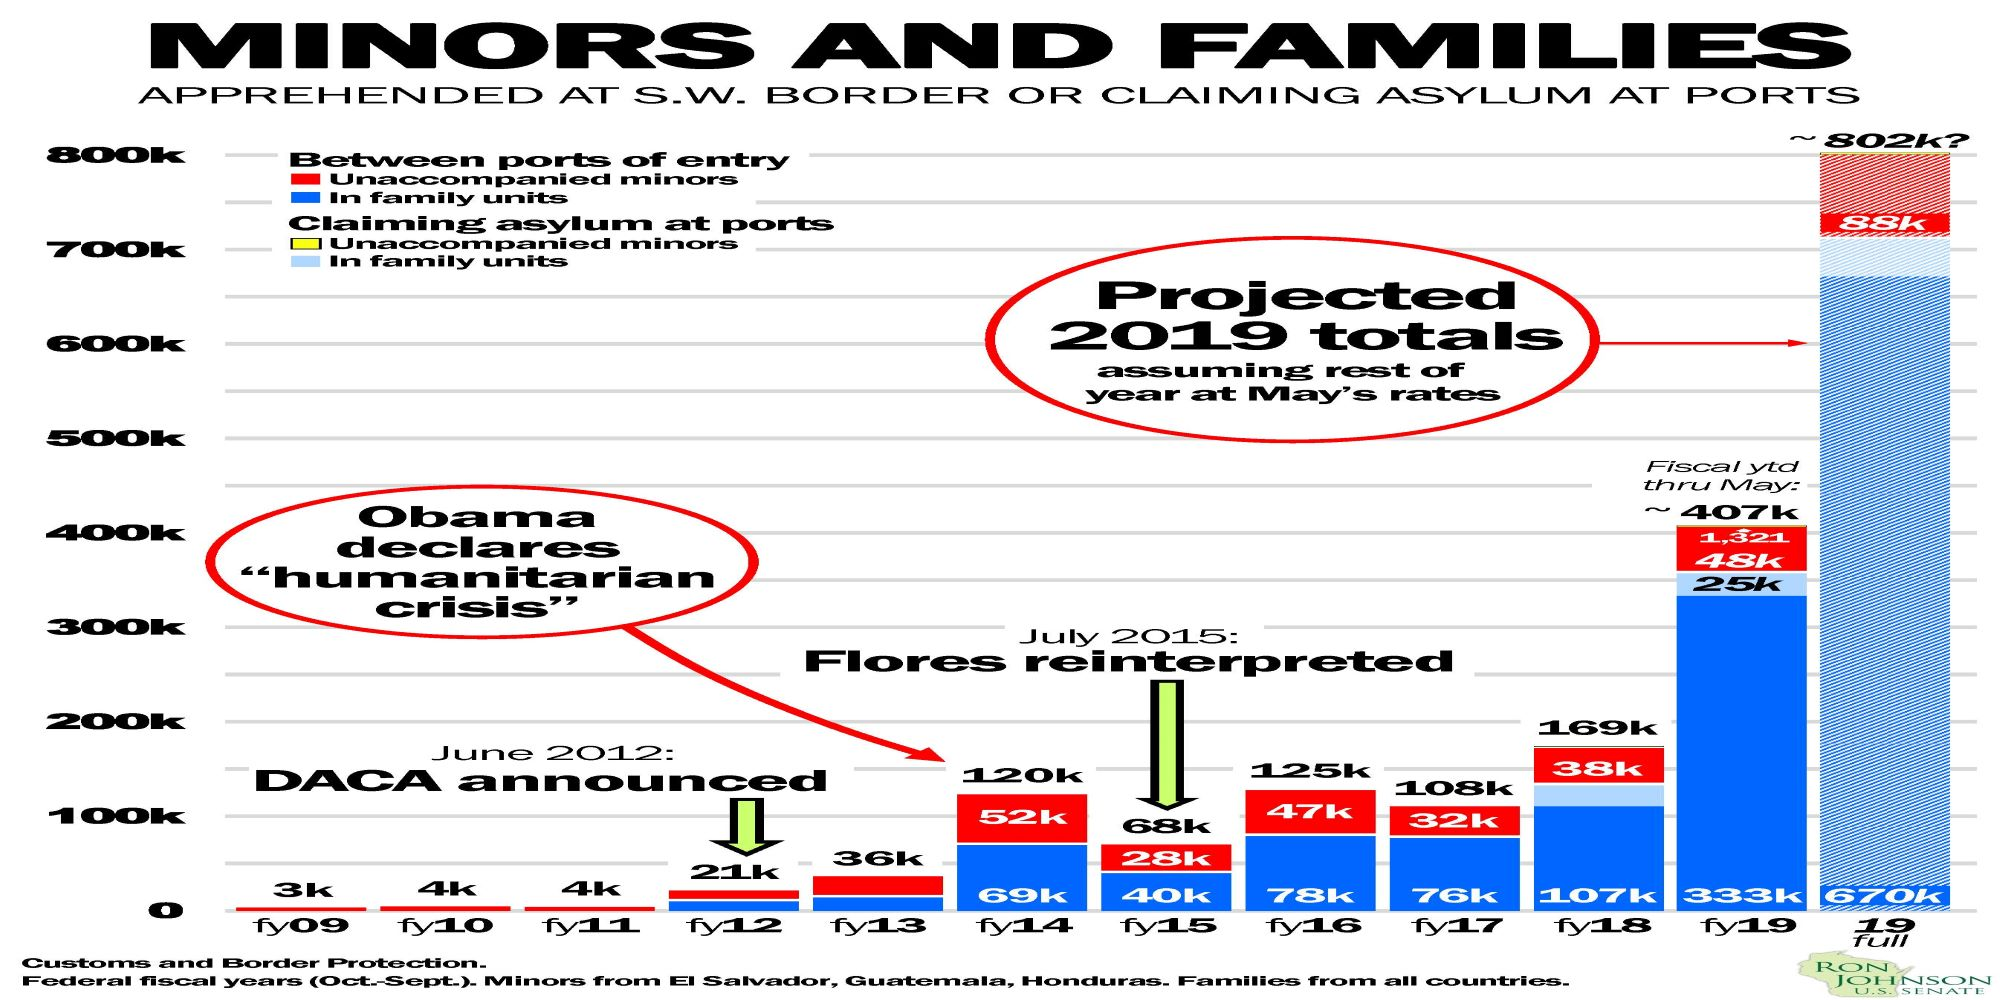 May Minors/Family Apprehension Totals